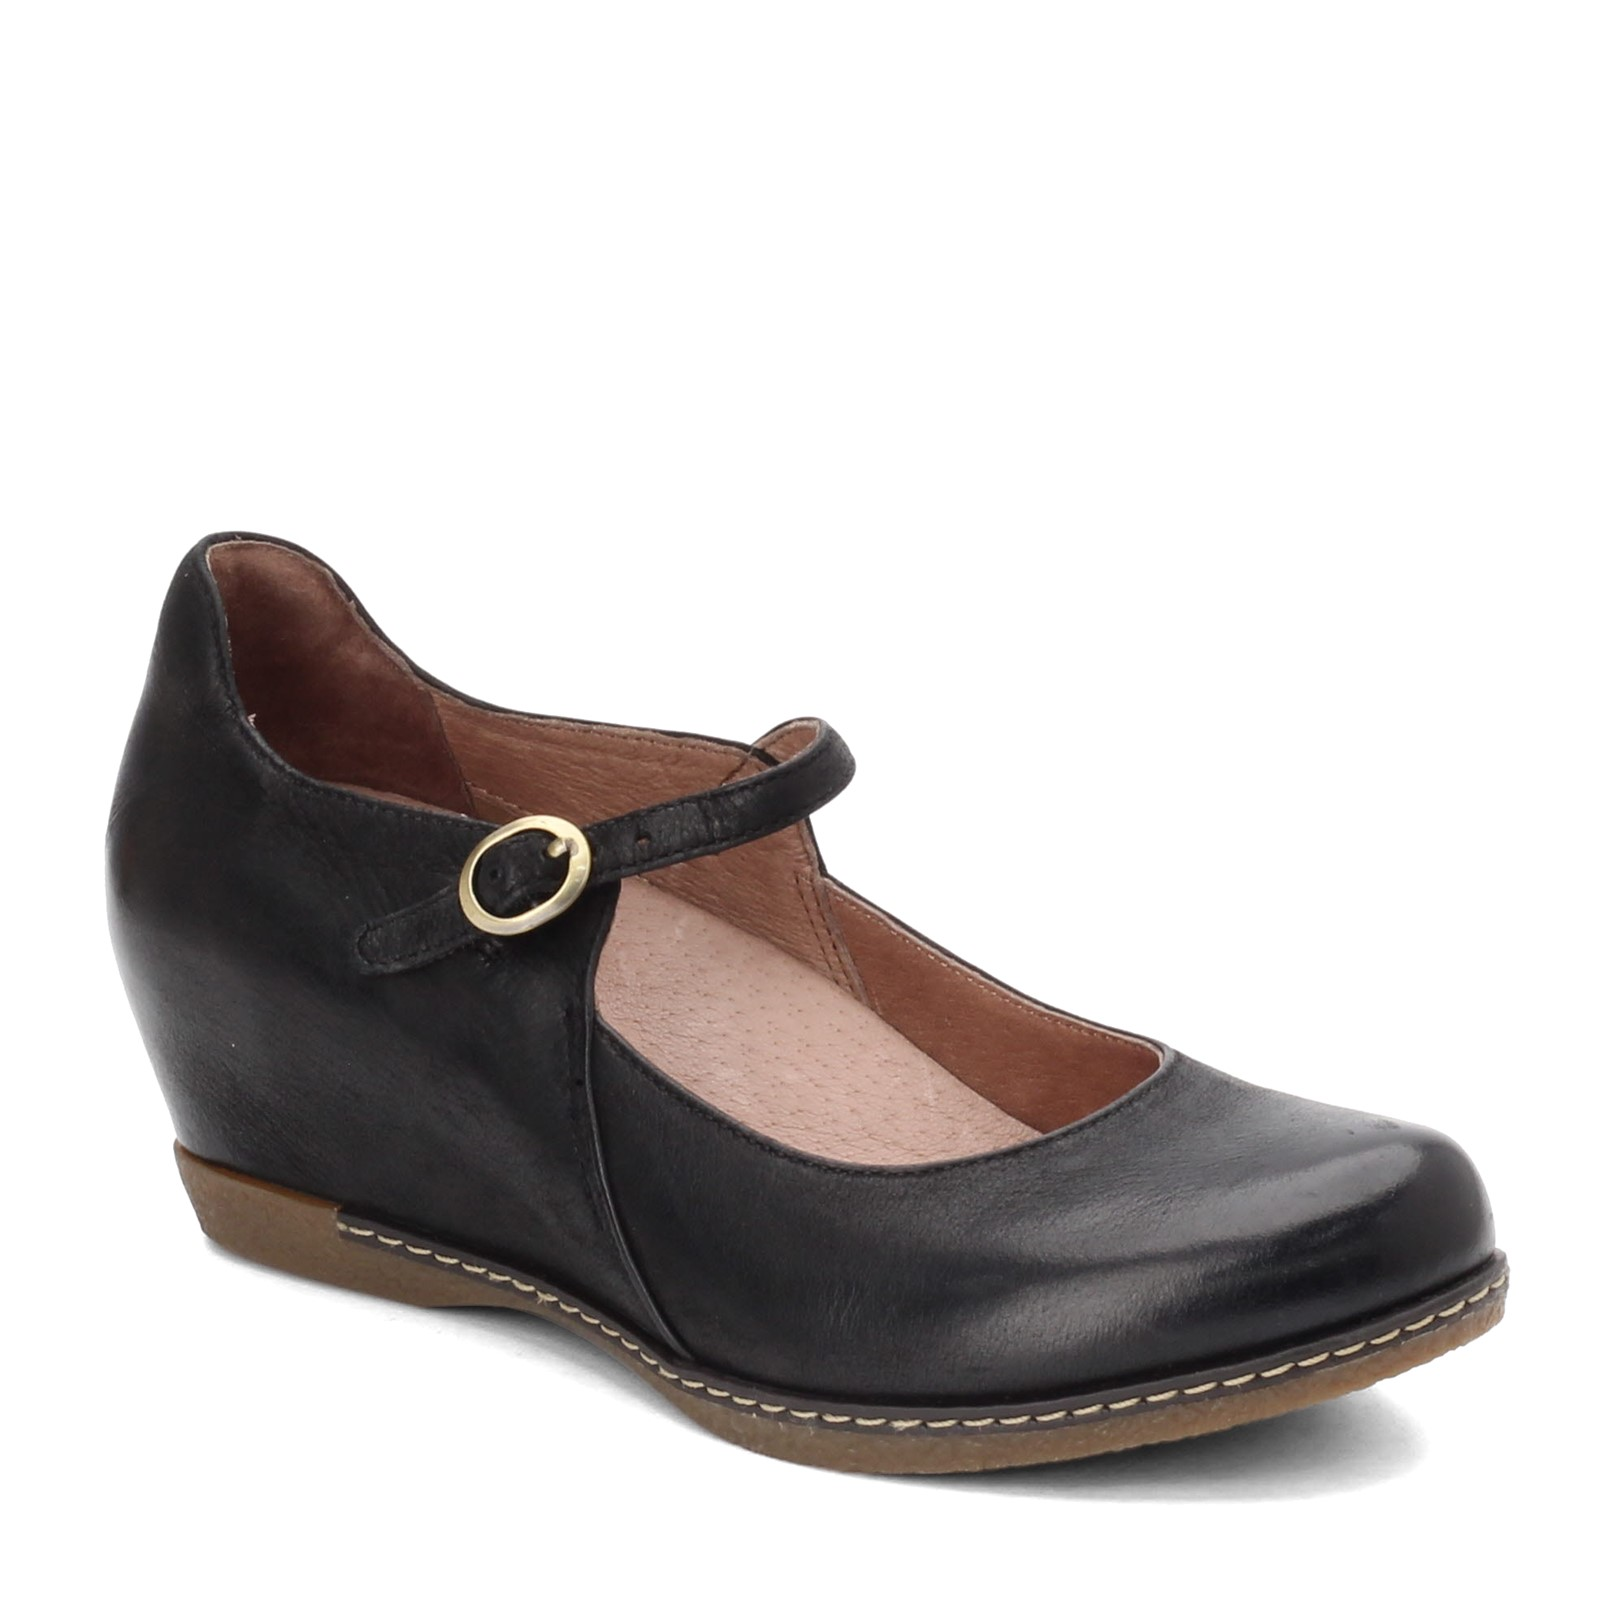 6b2b37baa7809 Women's Dansko, Loralie Mary Jane